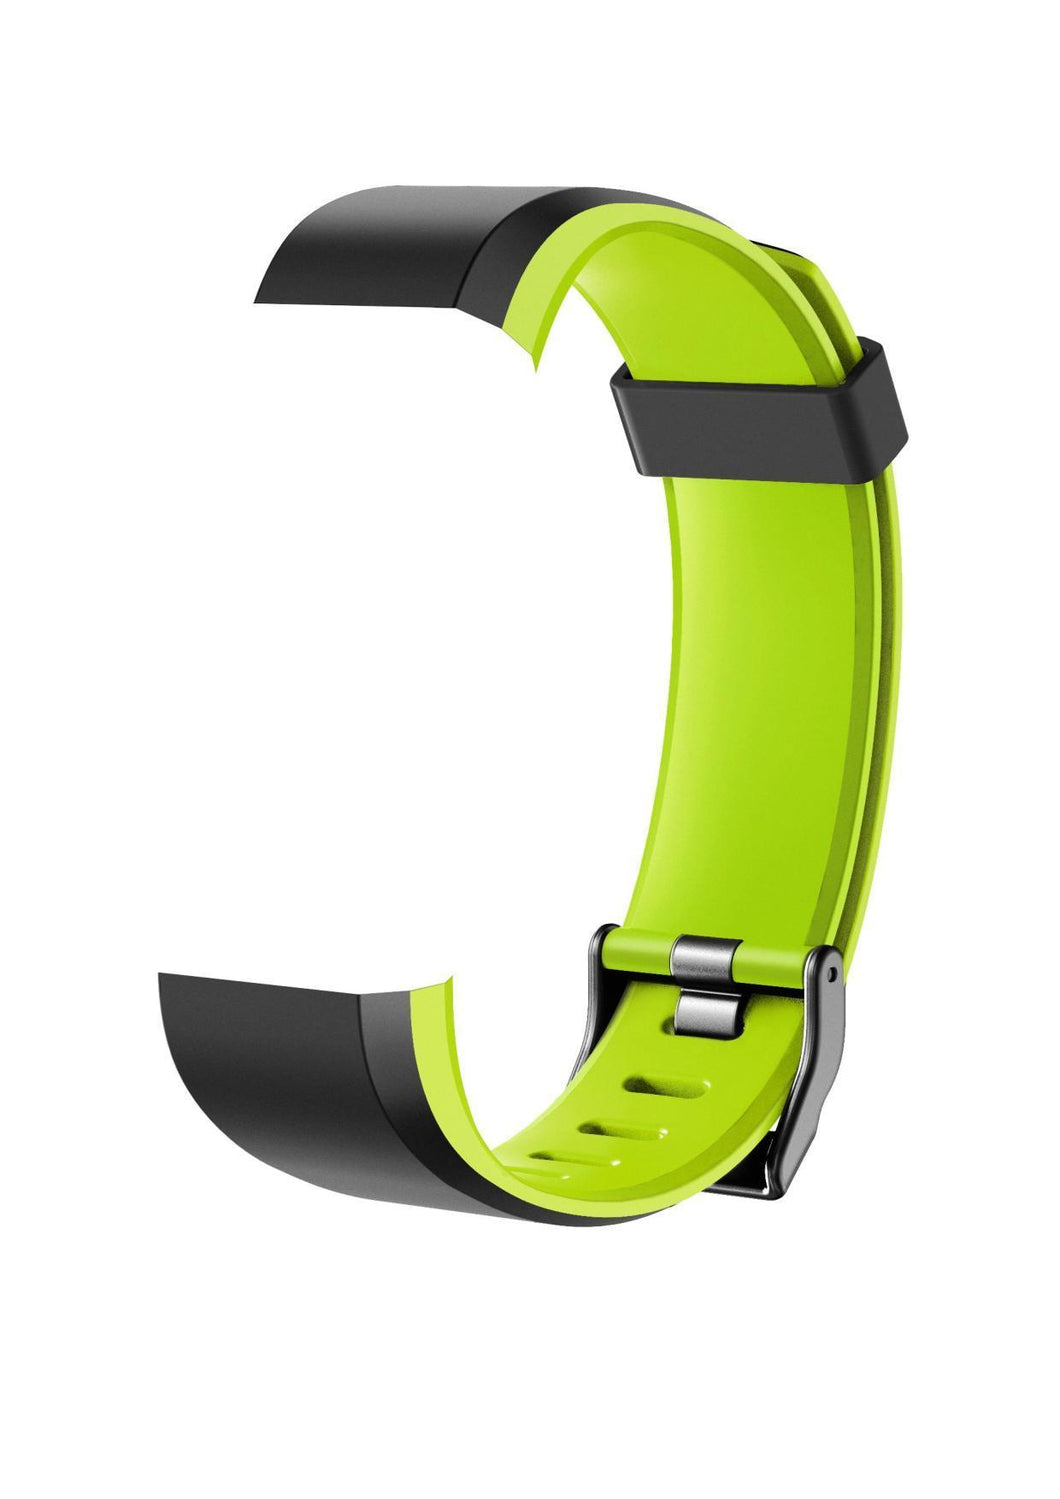 X2 GO - Smartwatch Band Strap - Black / Green band for CAC-102-M12 Bands Cactus Watches